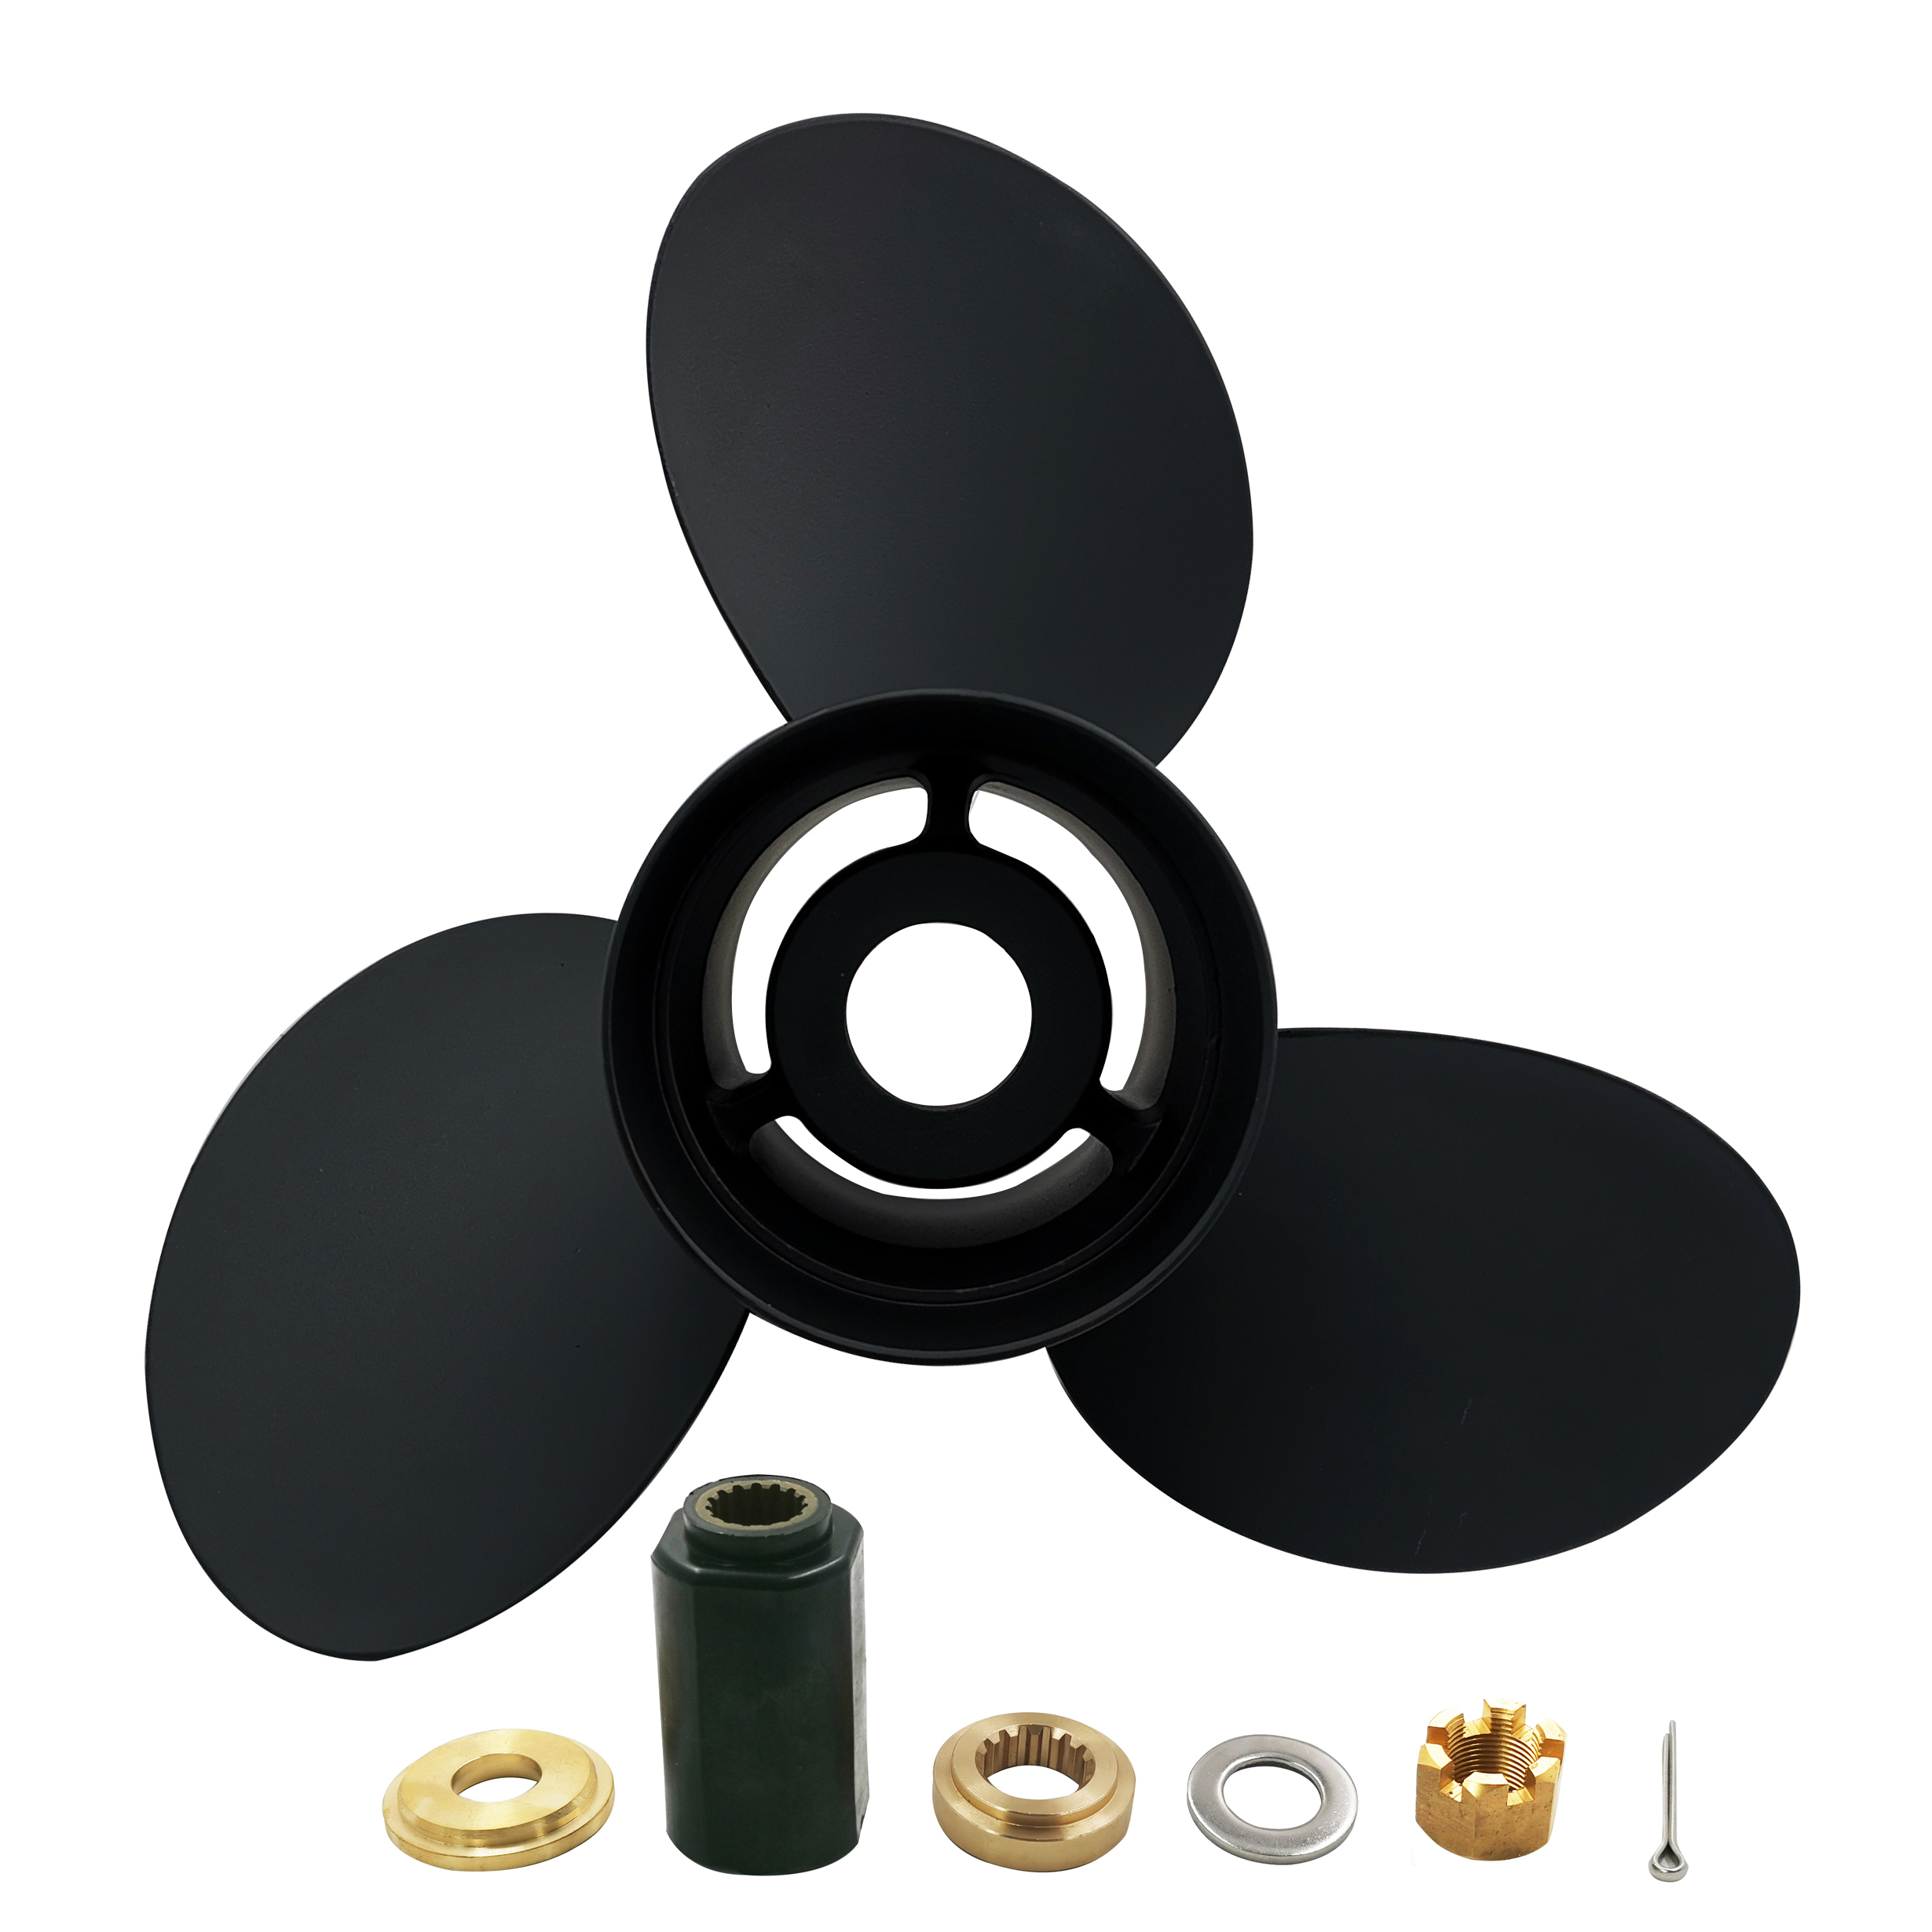 <font><b>13</b></font> <font><b>3</b></font>/4x15 for Yamaha 50-130 <font><b>HP</b></font> Interchangeable hub with hub kits 15 teeth spline aluminium boat accessories marine propellers image